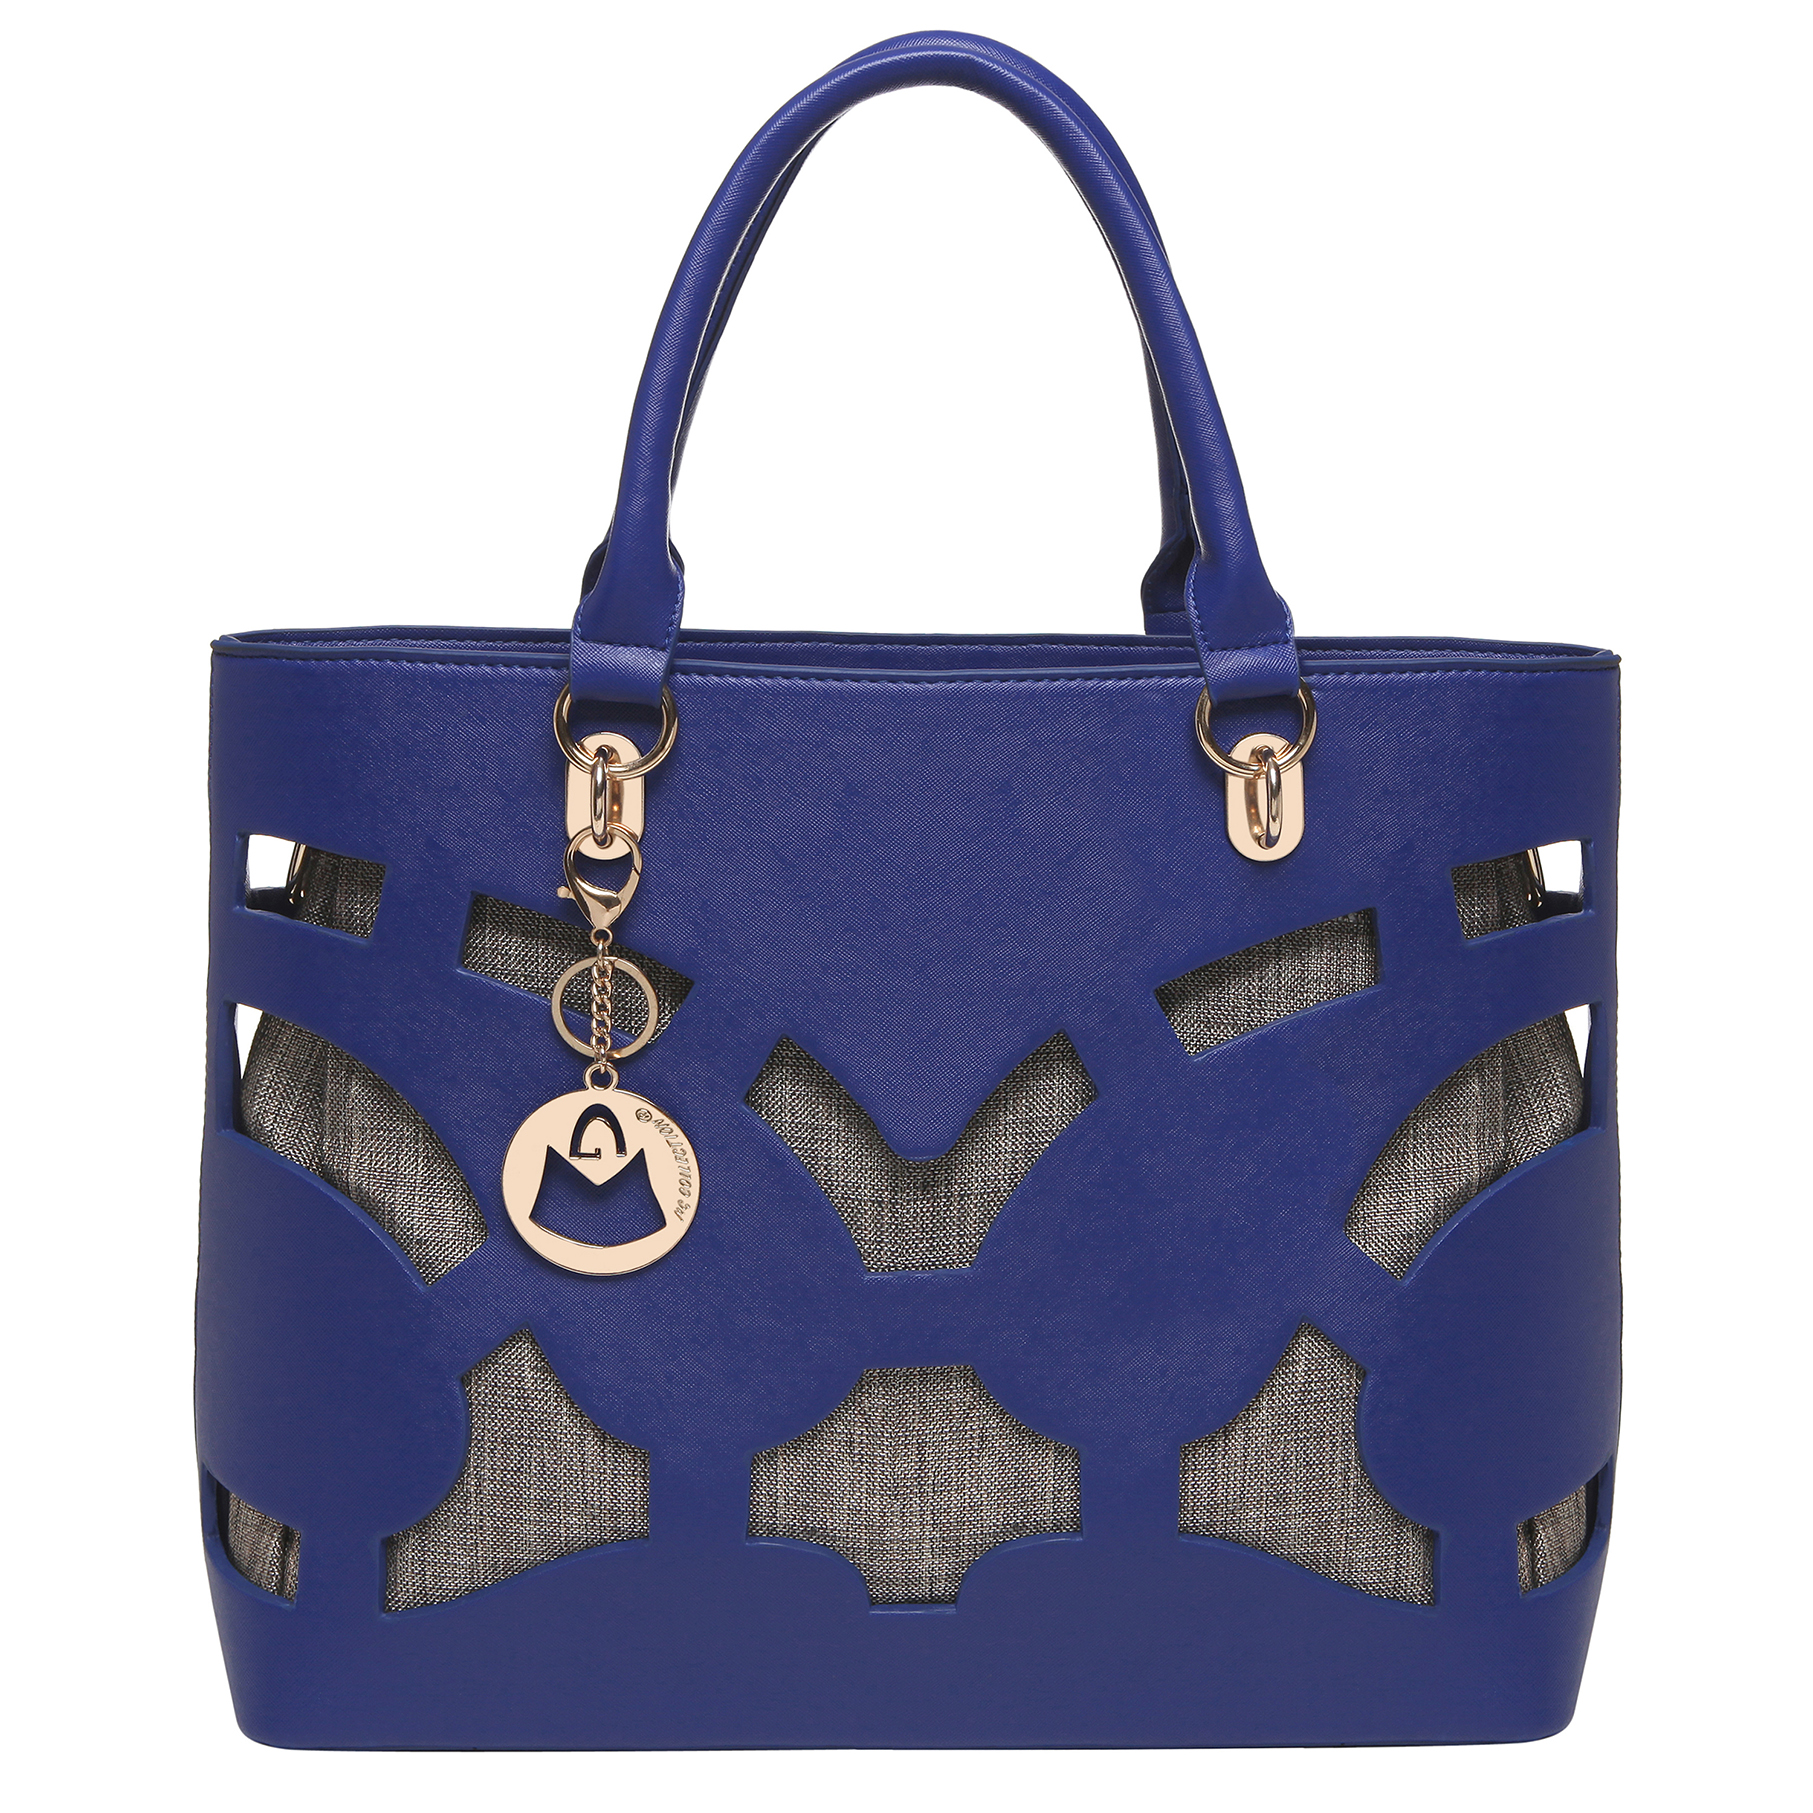 mg-collection-tayla-blue-fashion-cut-out-bag-tb-h0608blu-2.jpg